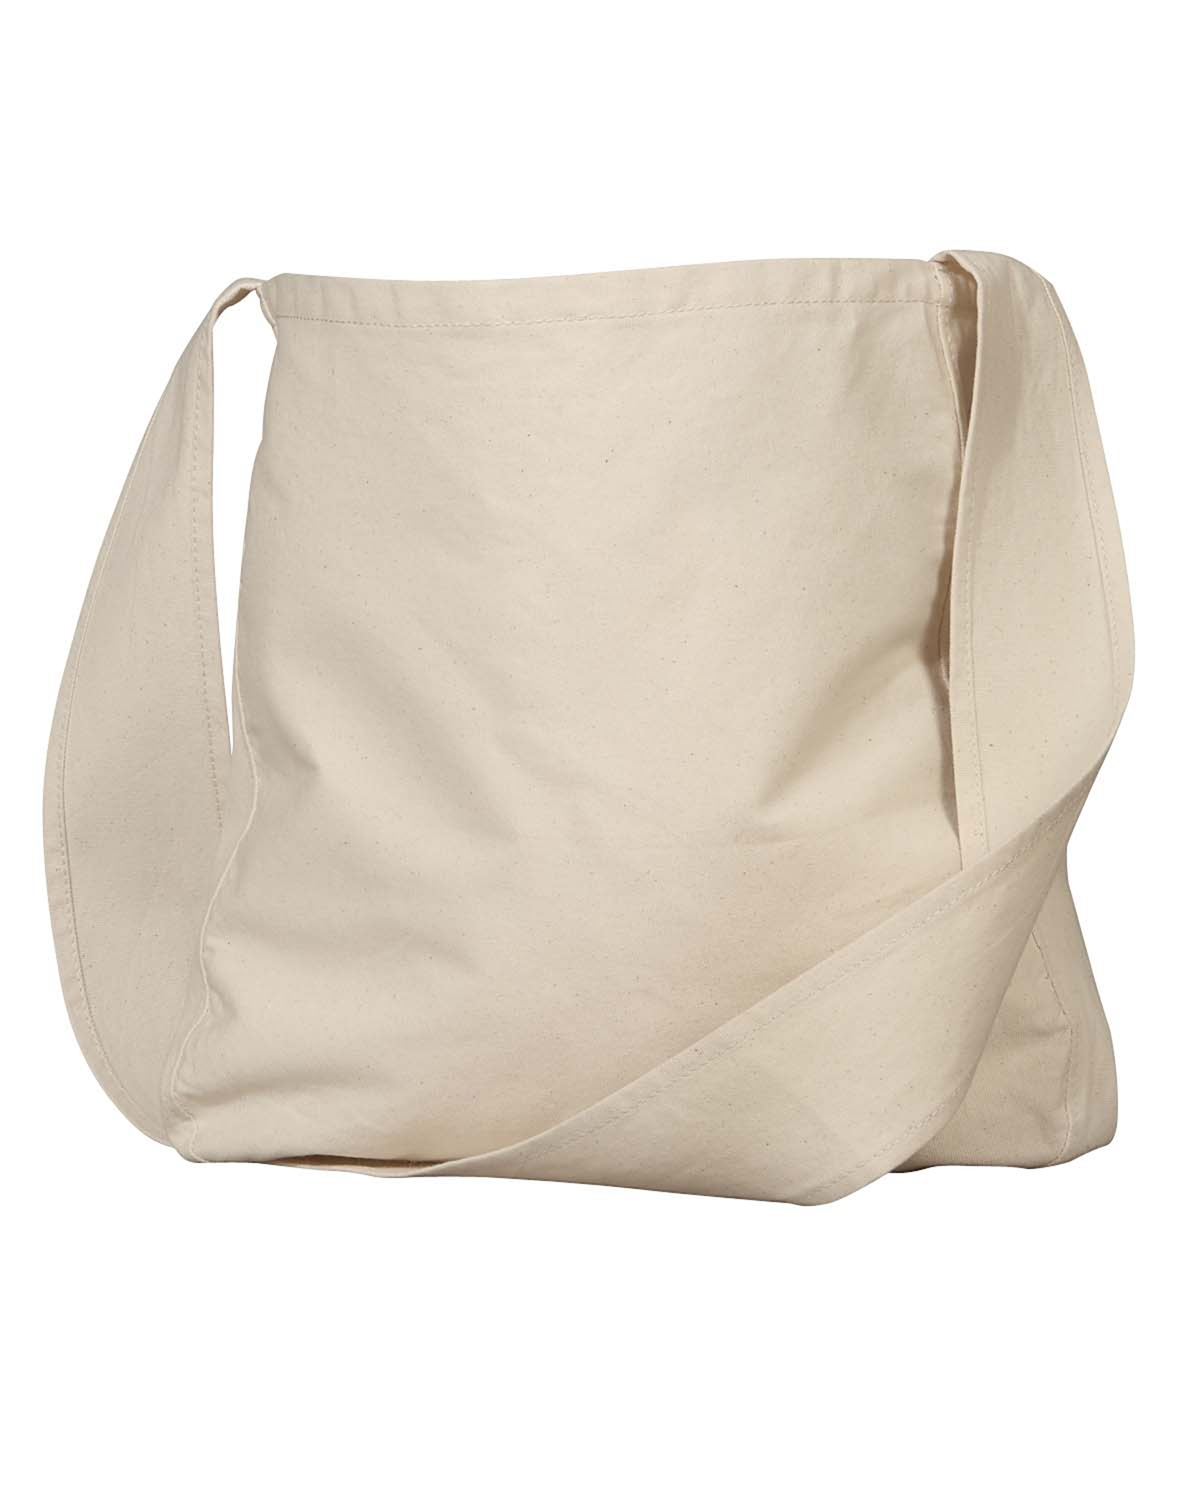 econscious EC8050 - 4.7 oz. Organic Cotton Canvas Farmer's Market Bag